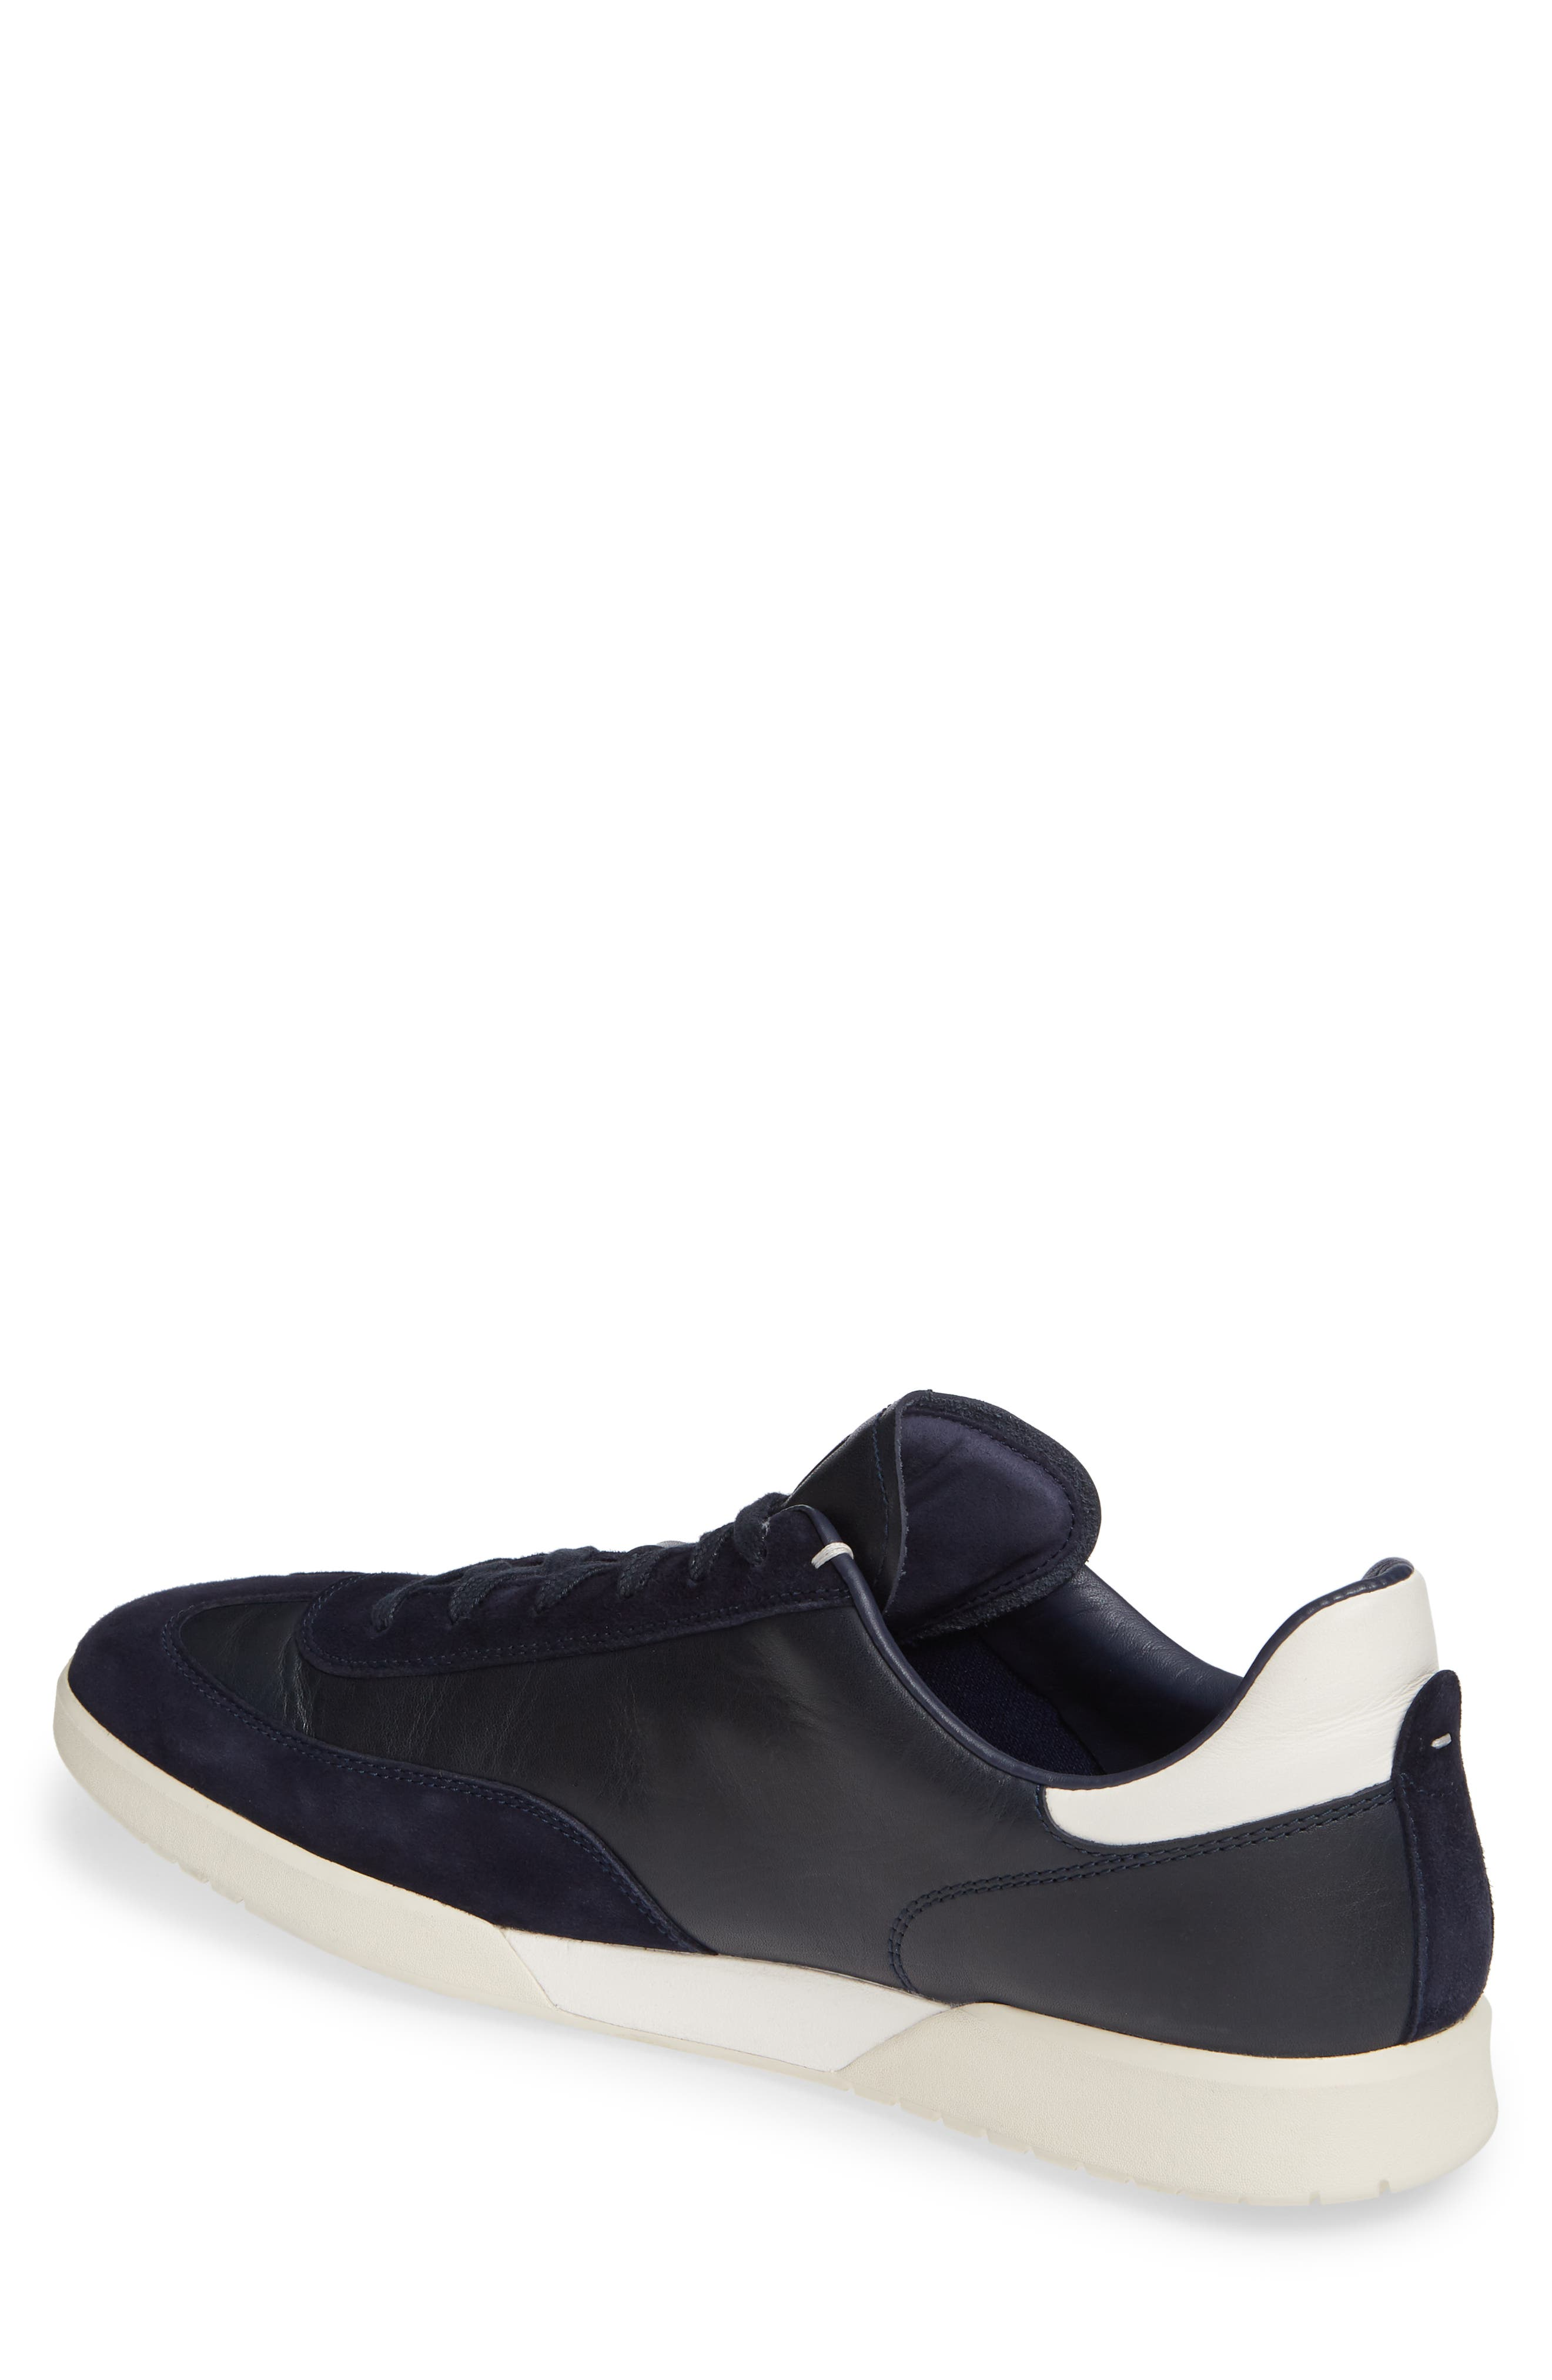 COLE HAAN, GrandPro Turf Sneaker, Alternate thumbnail 2, color, NAVY INK LEATHER